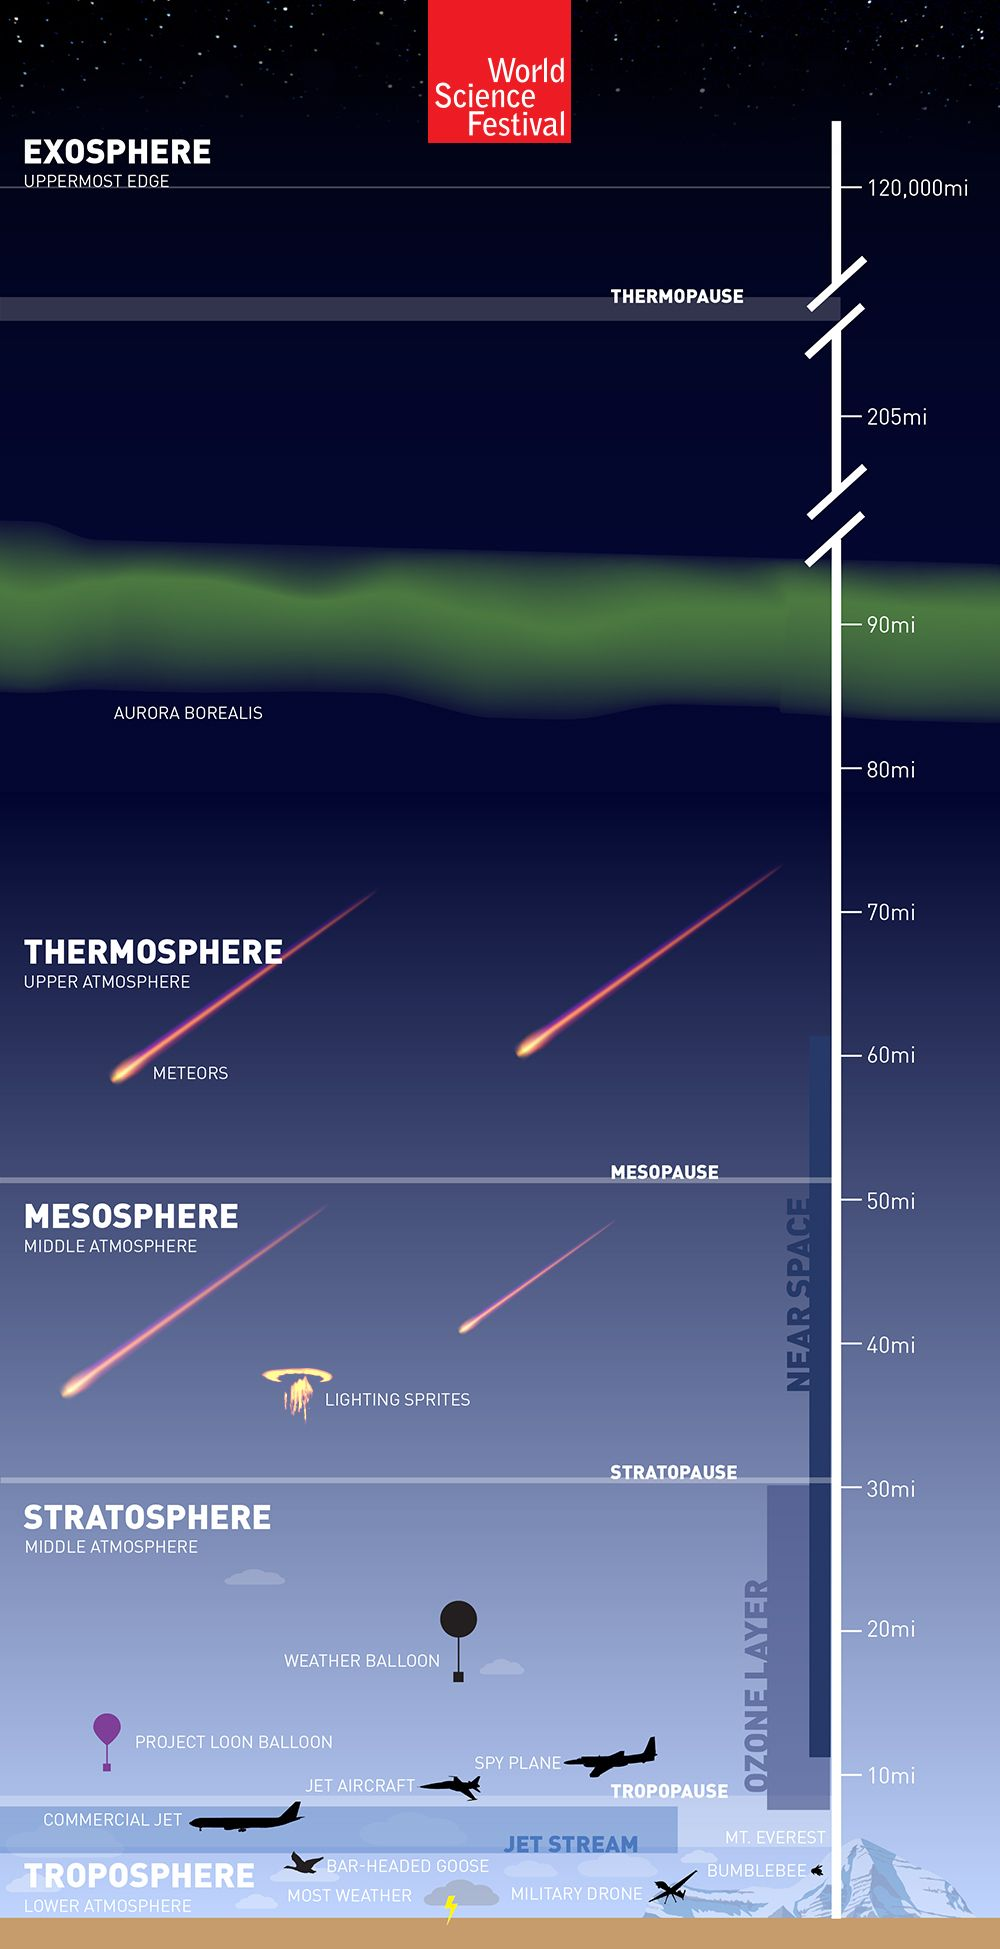 Earth's Atmosphere: 'The Great Aerial Ocean'